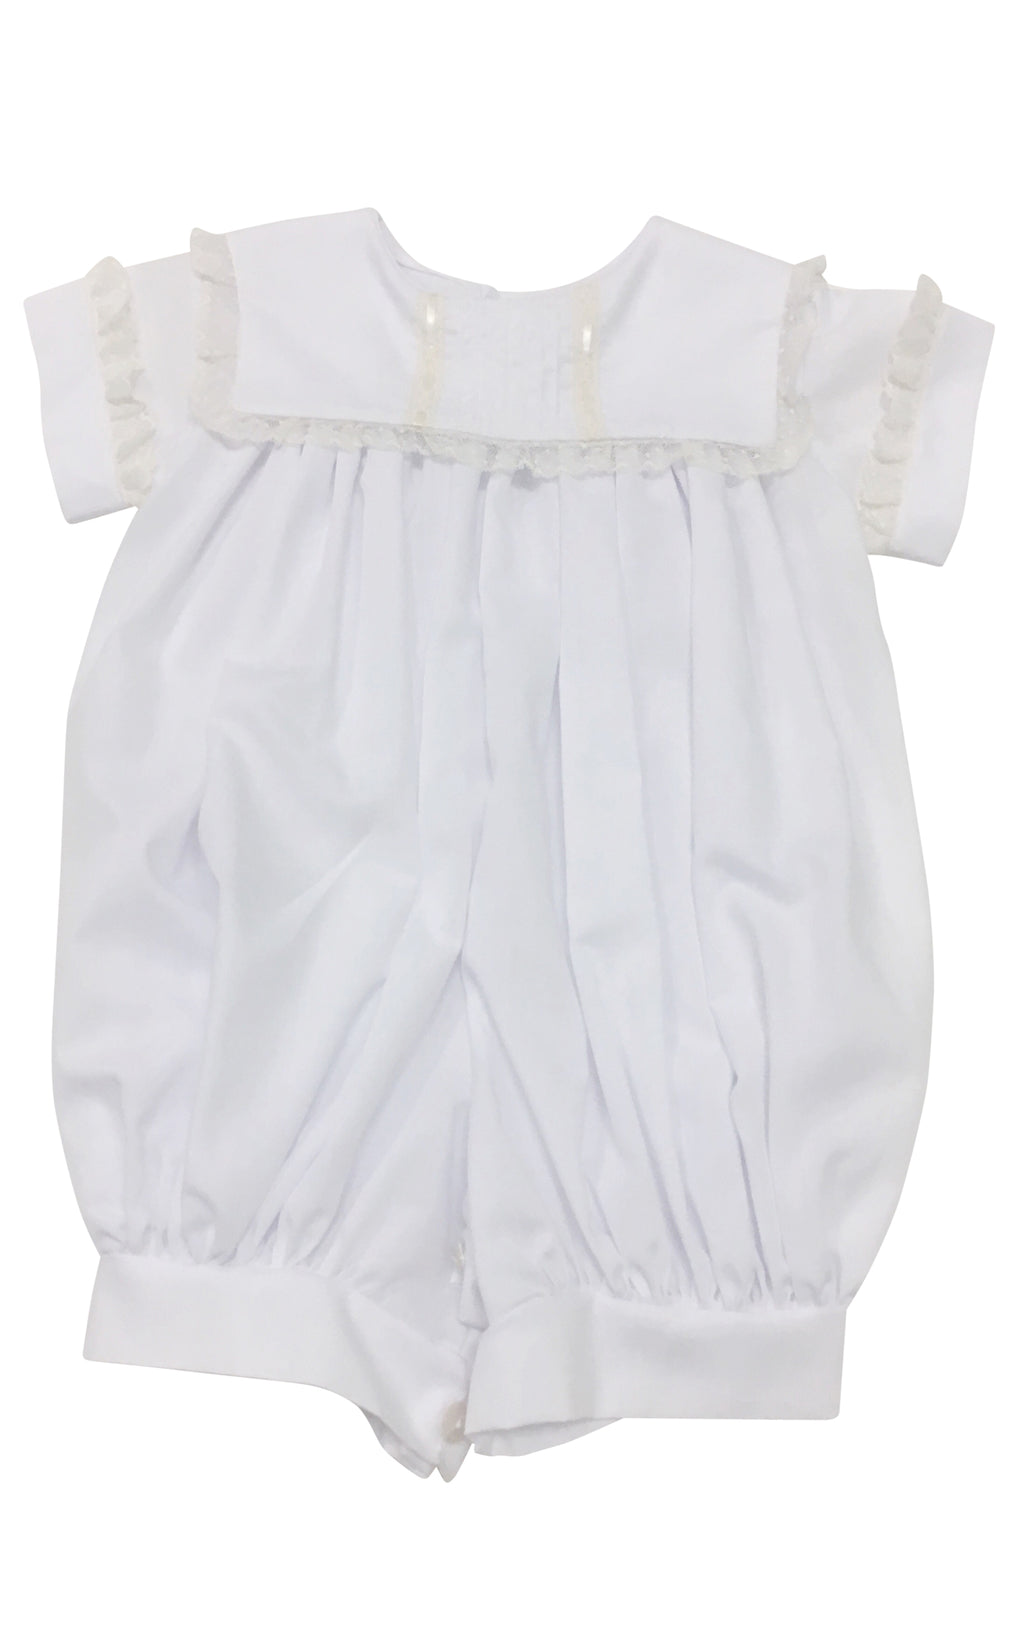 Heirloom White with Ecru Bubble - Born Childrens Boutique